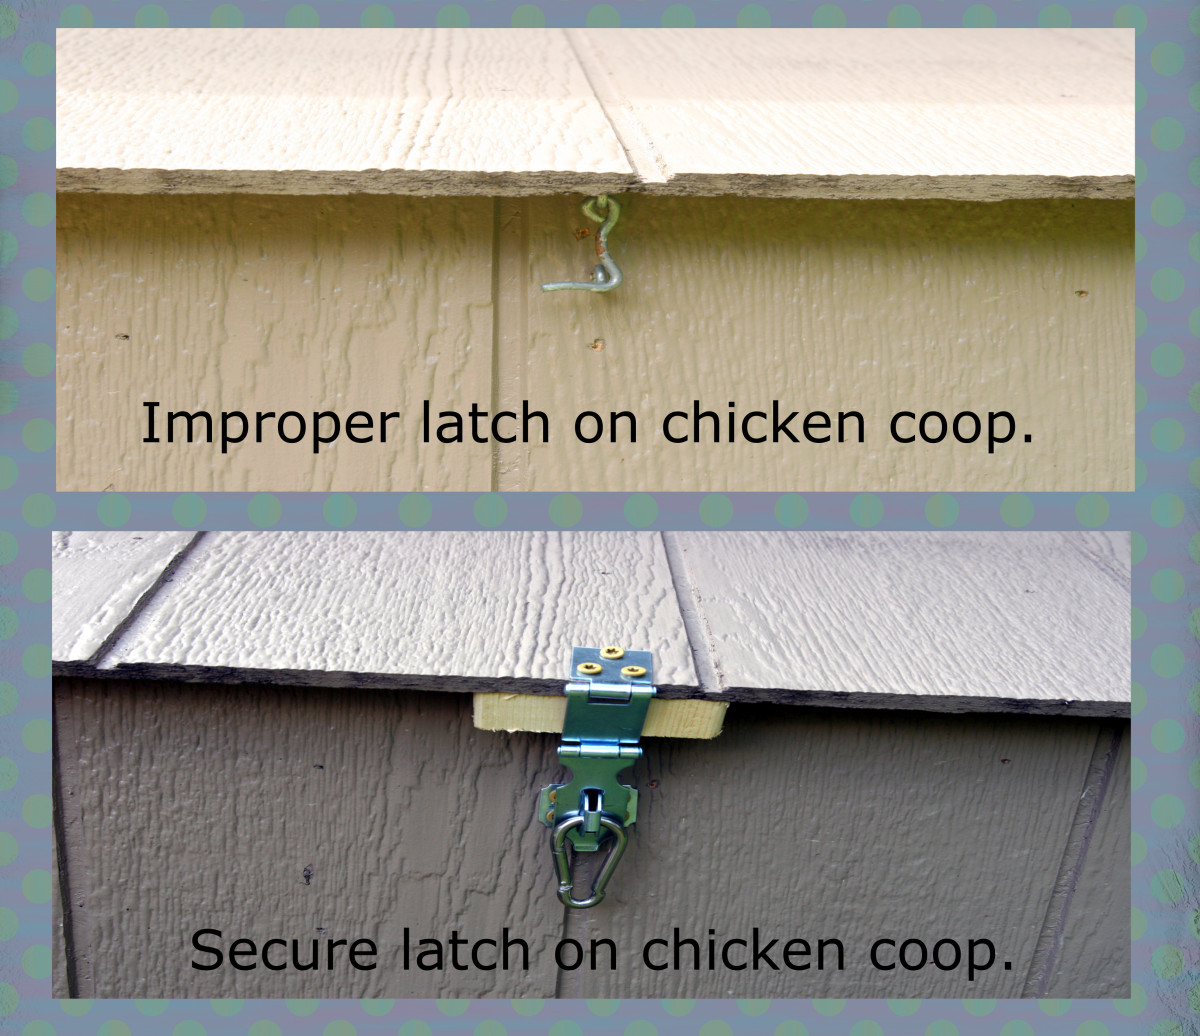 This chicken coop originally had a hook and eye-bolt style latch. A more secure latch was installed with a carabiner. This system will prevent raccoons from opening the latch and entering the coop.